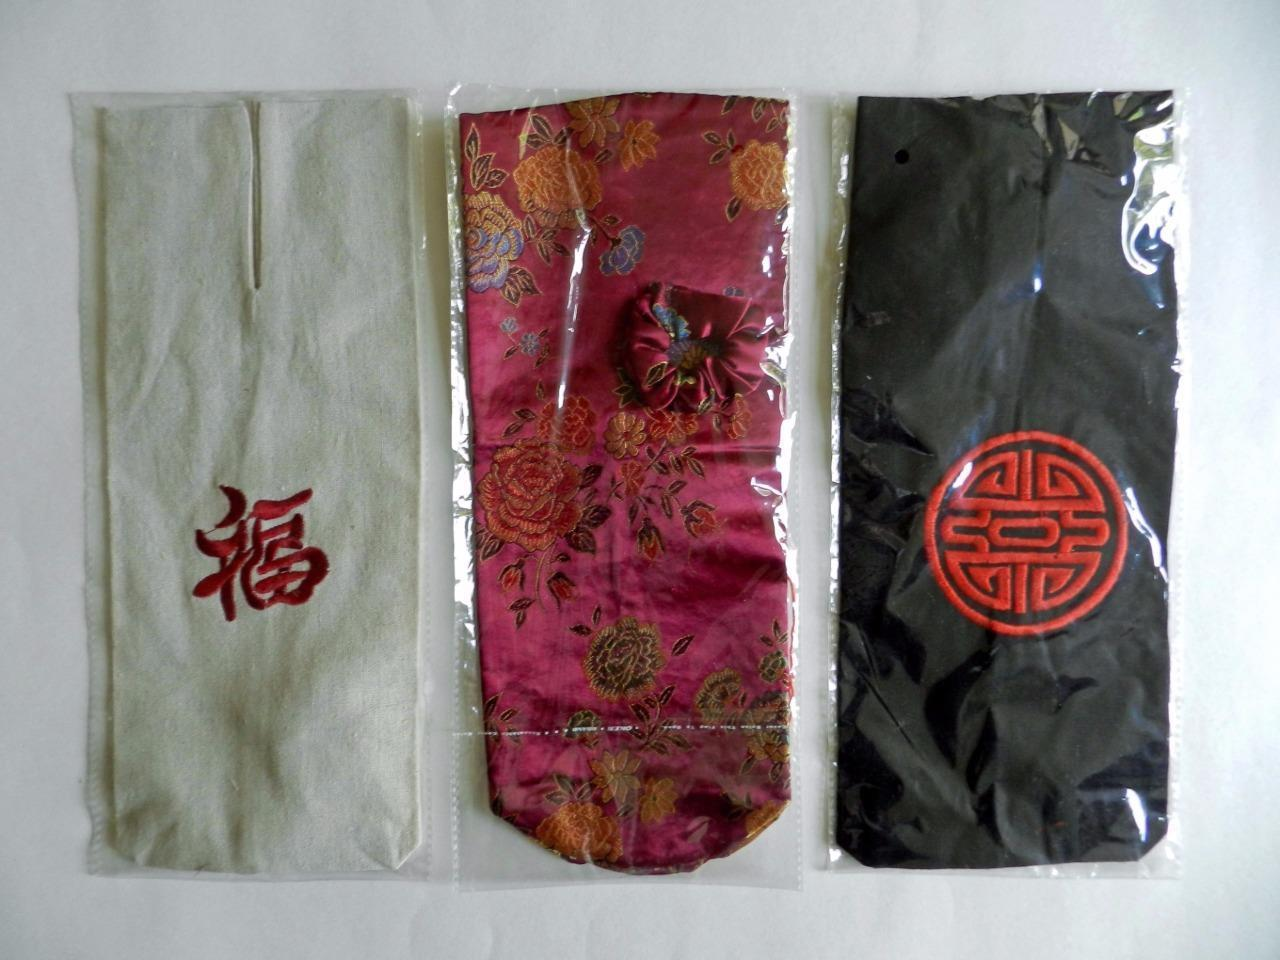 Asian-Design Wine/Bottle Bags/Sleeves x3 - New in Packaging! - $18.00